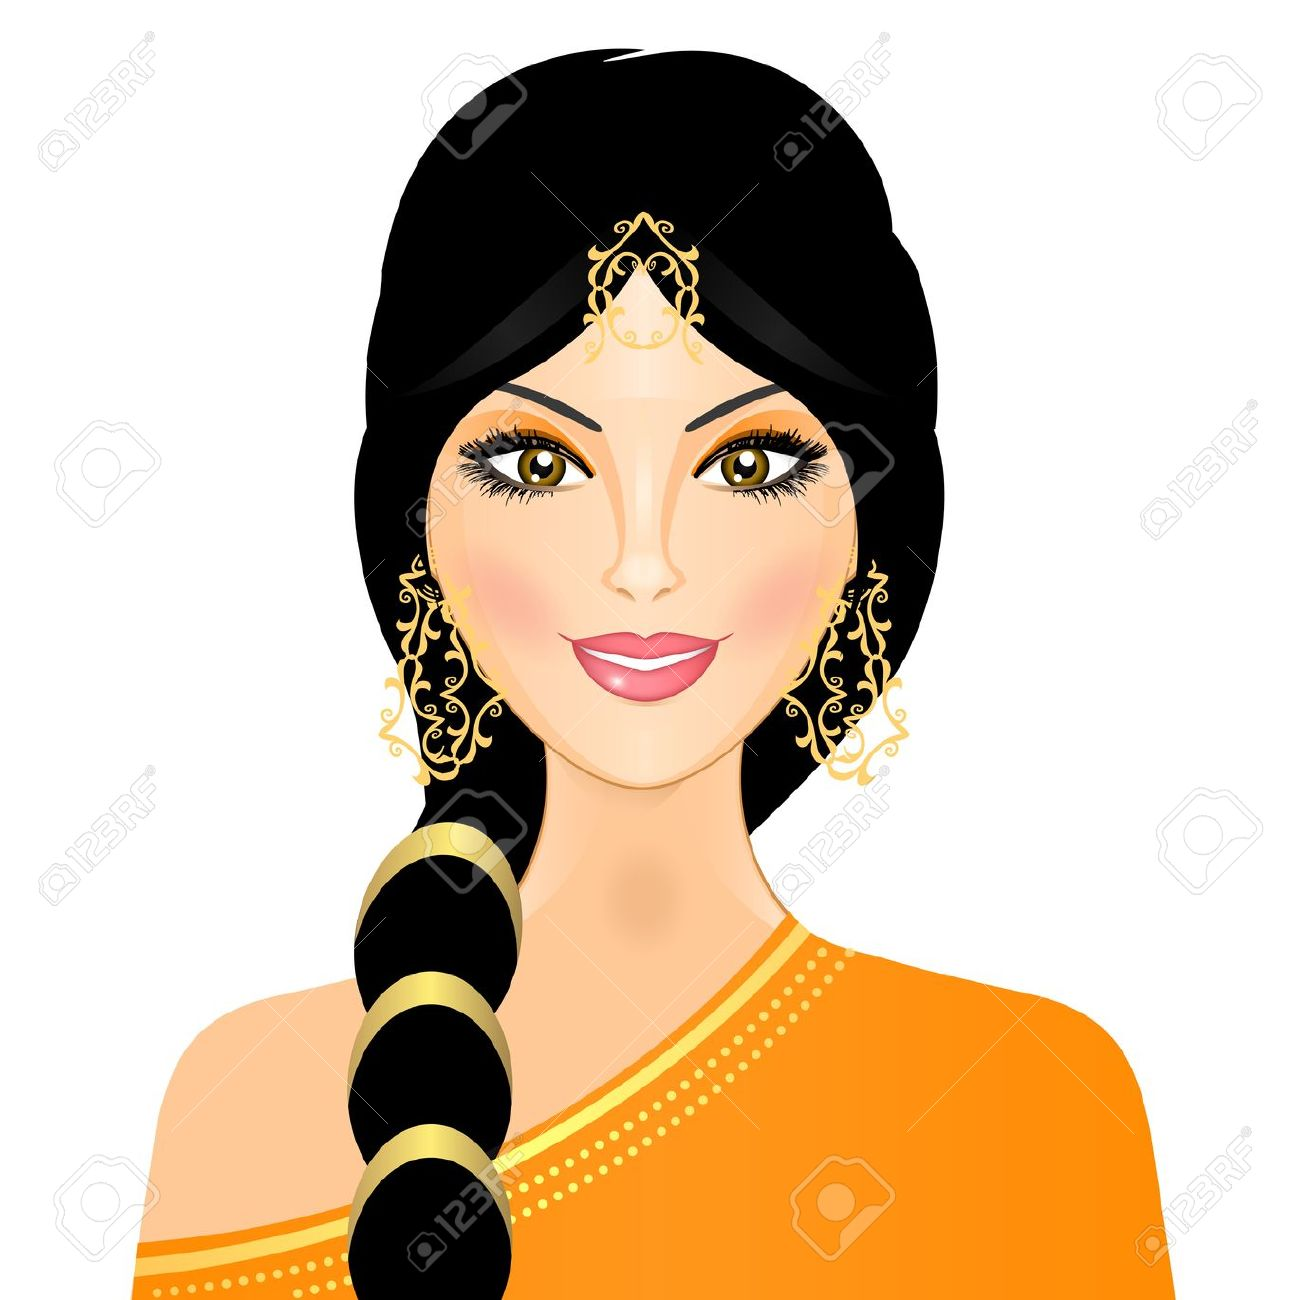 Traditional indian lady clipart clip art download Traditional indian lady clipart - ClipartFest clip art download